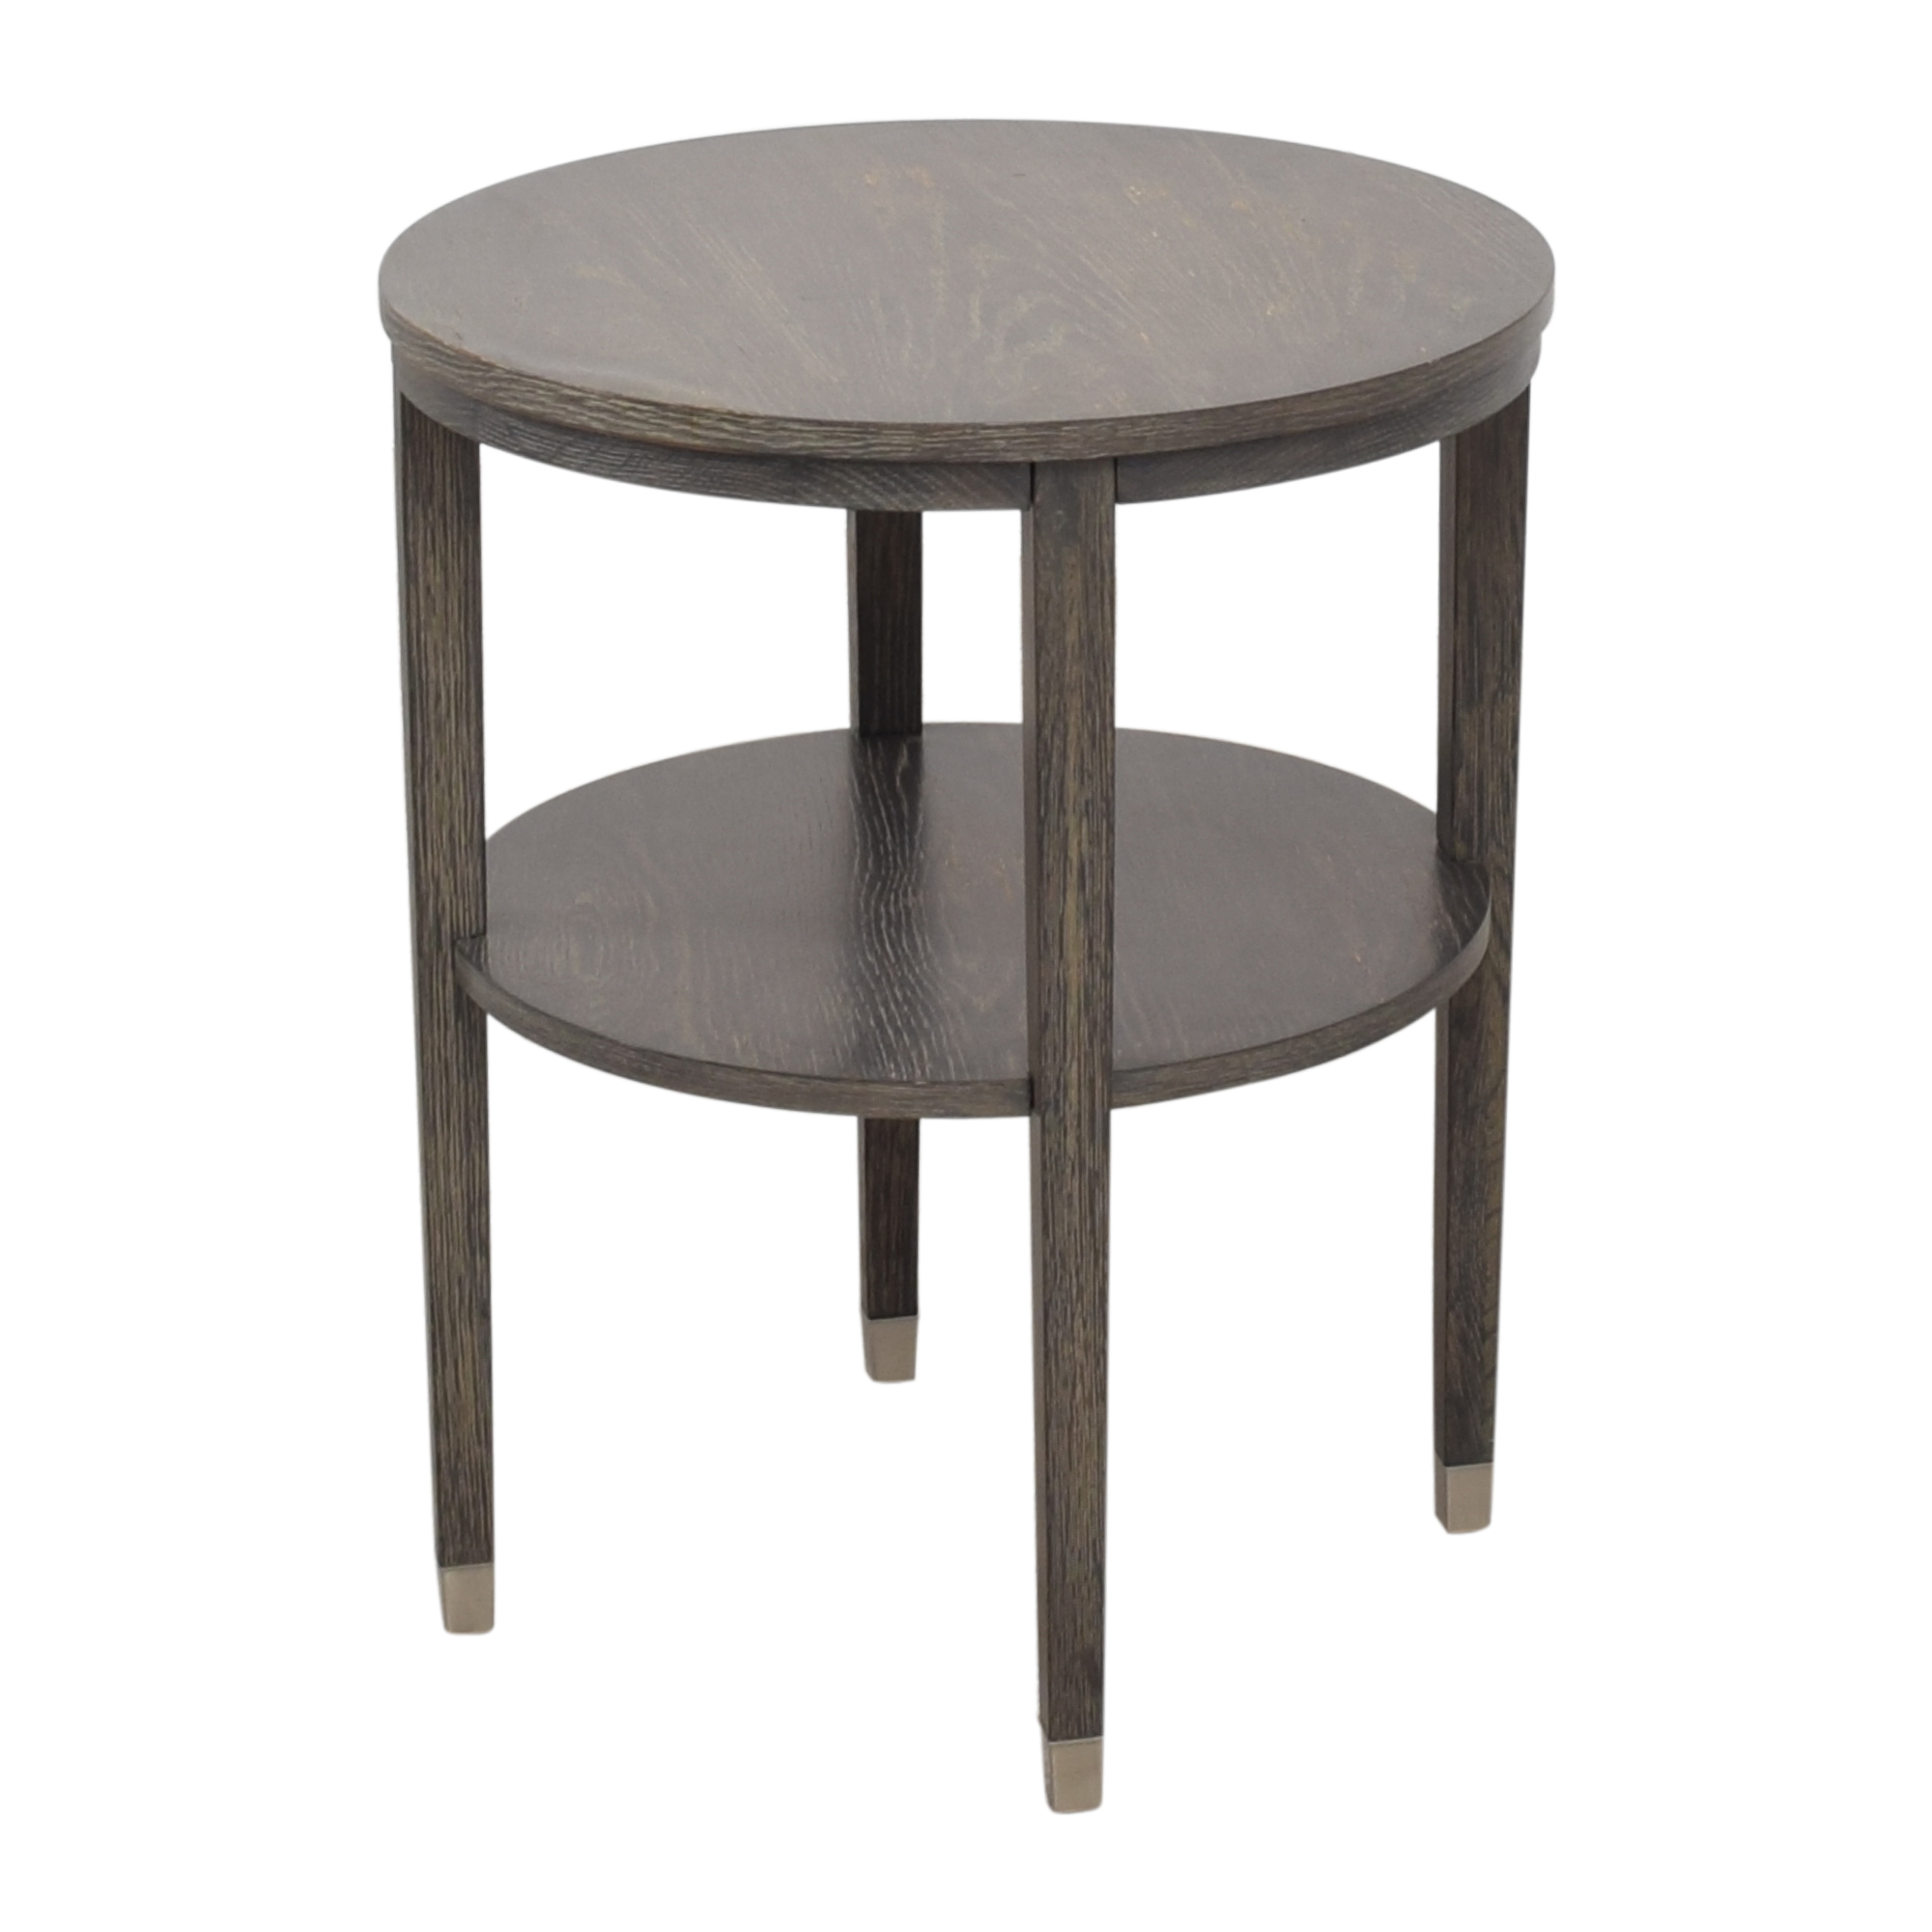 Arteriors Arteriors Home Gentry Side Table on sale